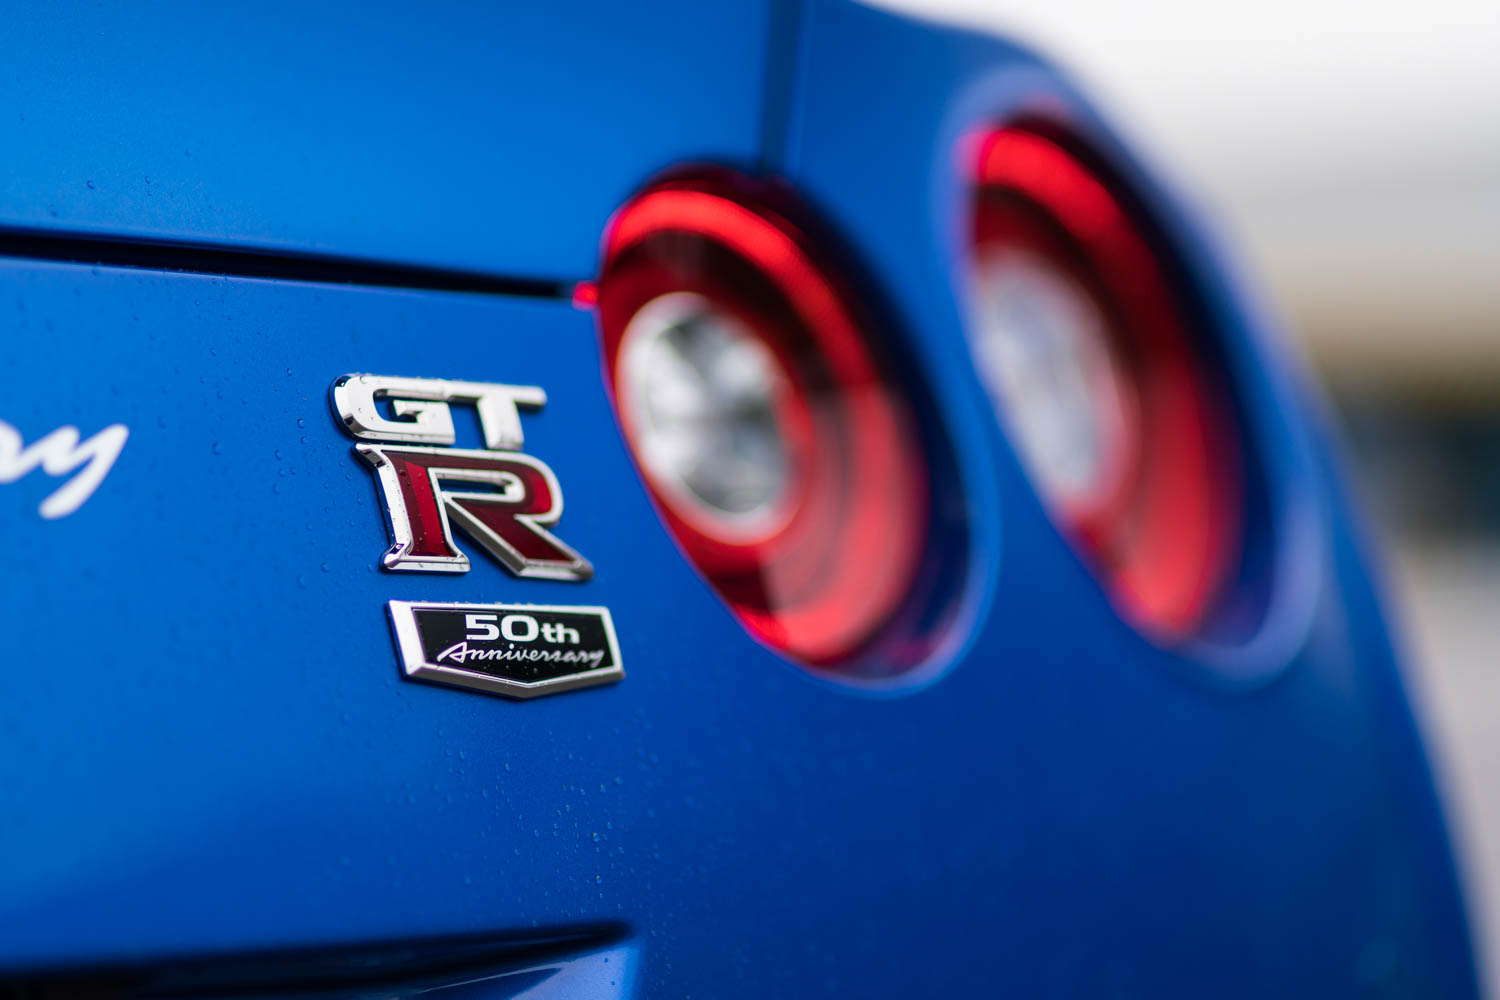 Nissan 50th Anniversary GT-R badge